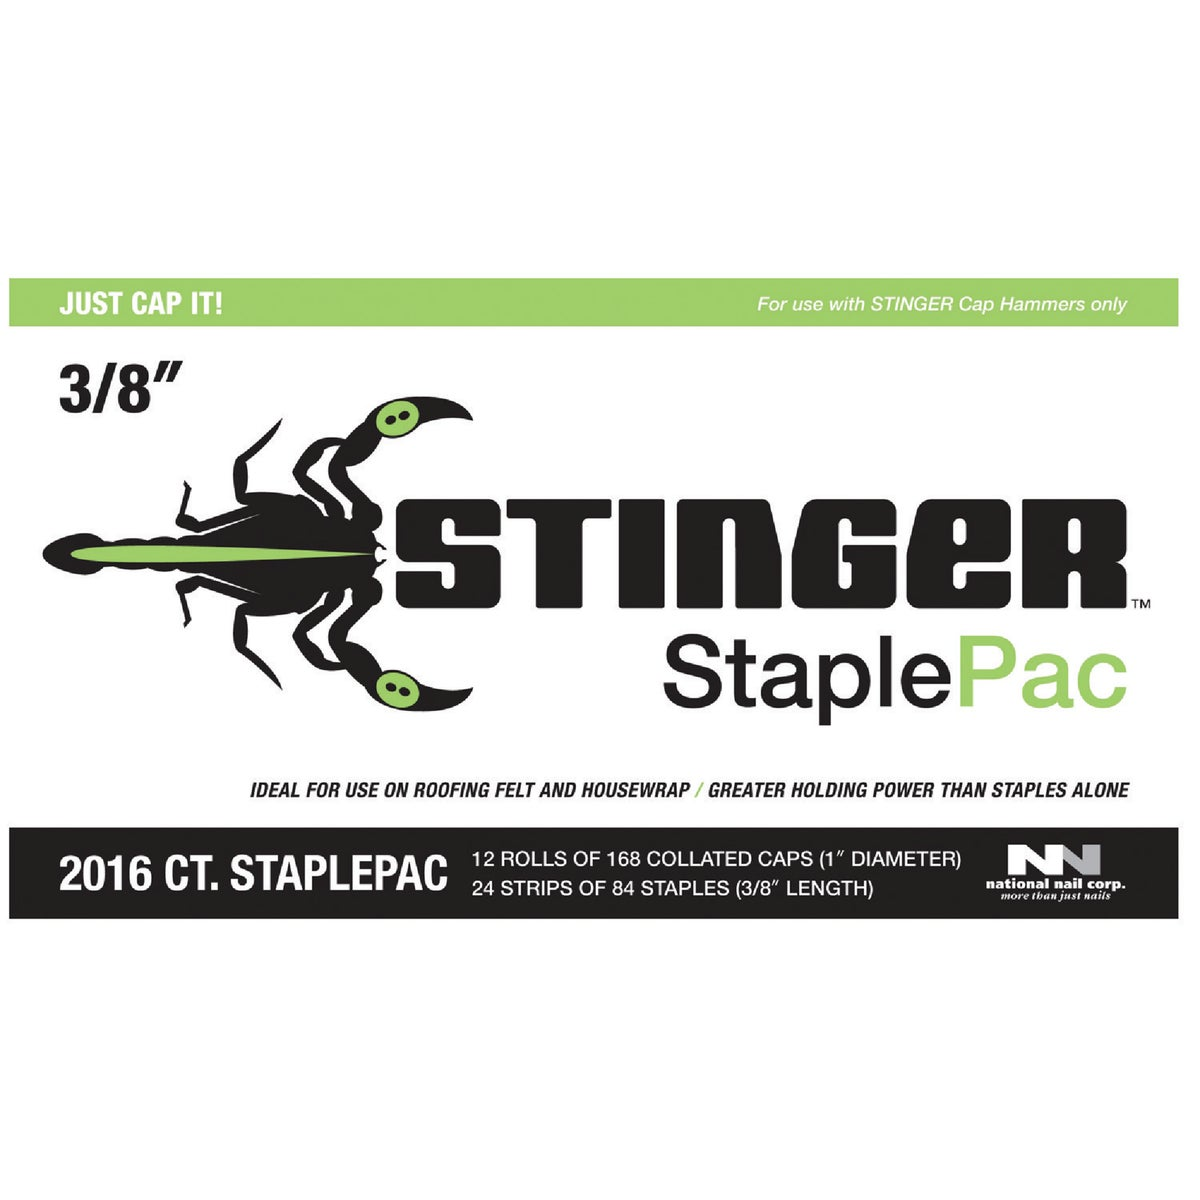 "3/8"" CAP STAPLES - 136420 by National Nail Corp"